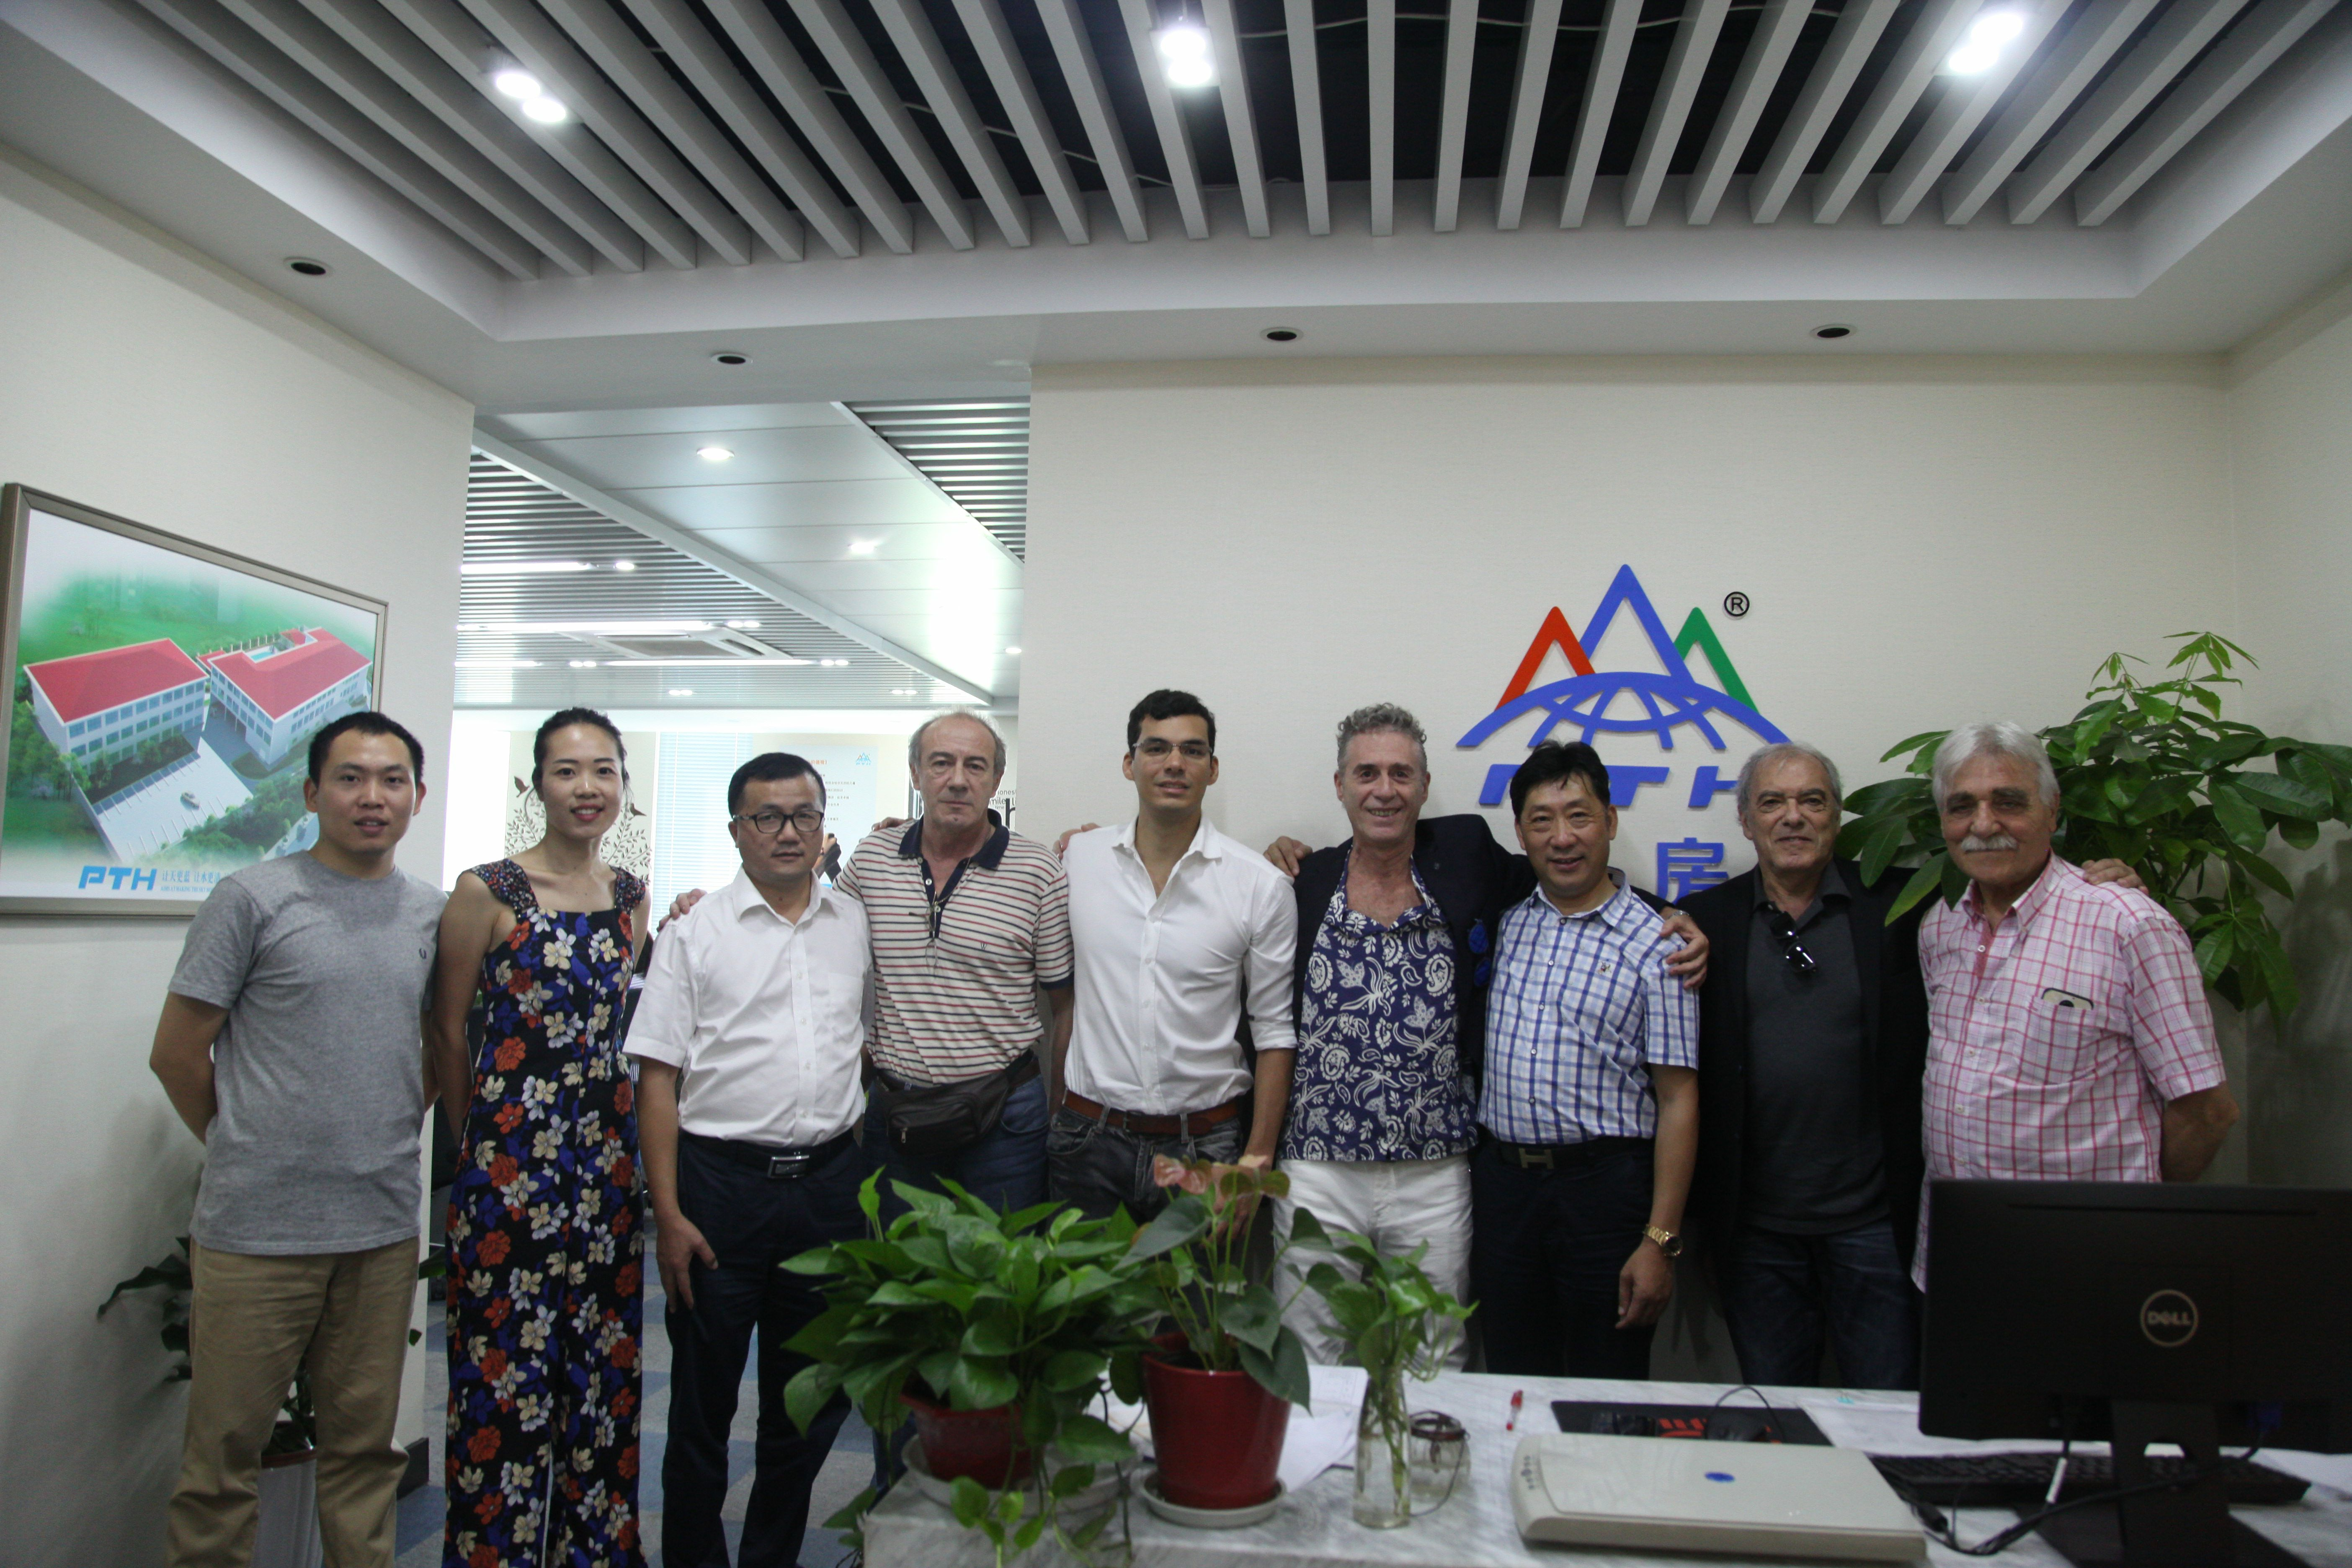 The Famous Real Estate Developer Company From Argentina Visited PTH